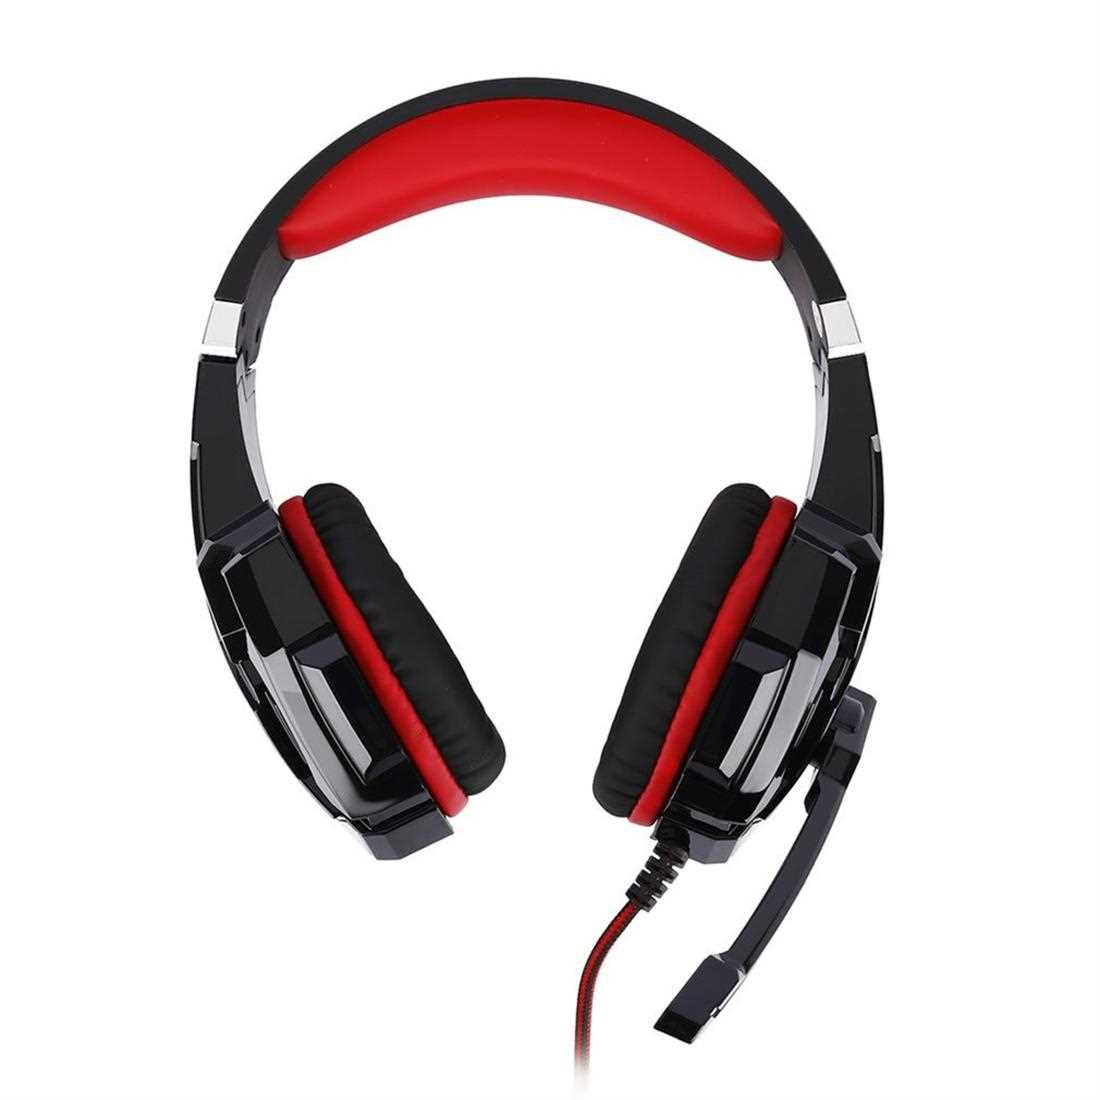 G9000 Over-Ear Gaming Headset 3.5mm Game Headphone Earphone With Microphone (Black+Red)